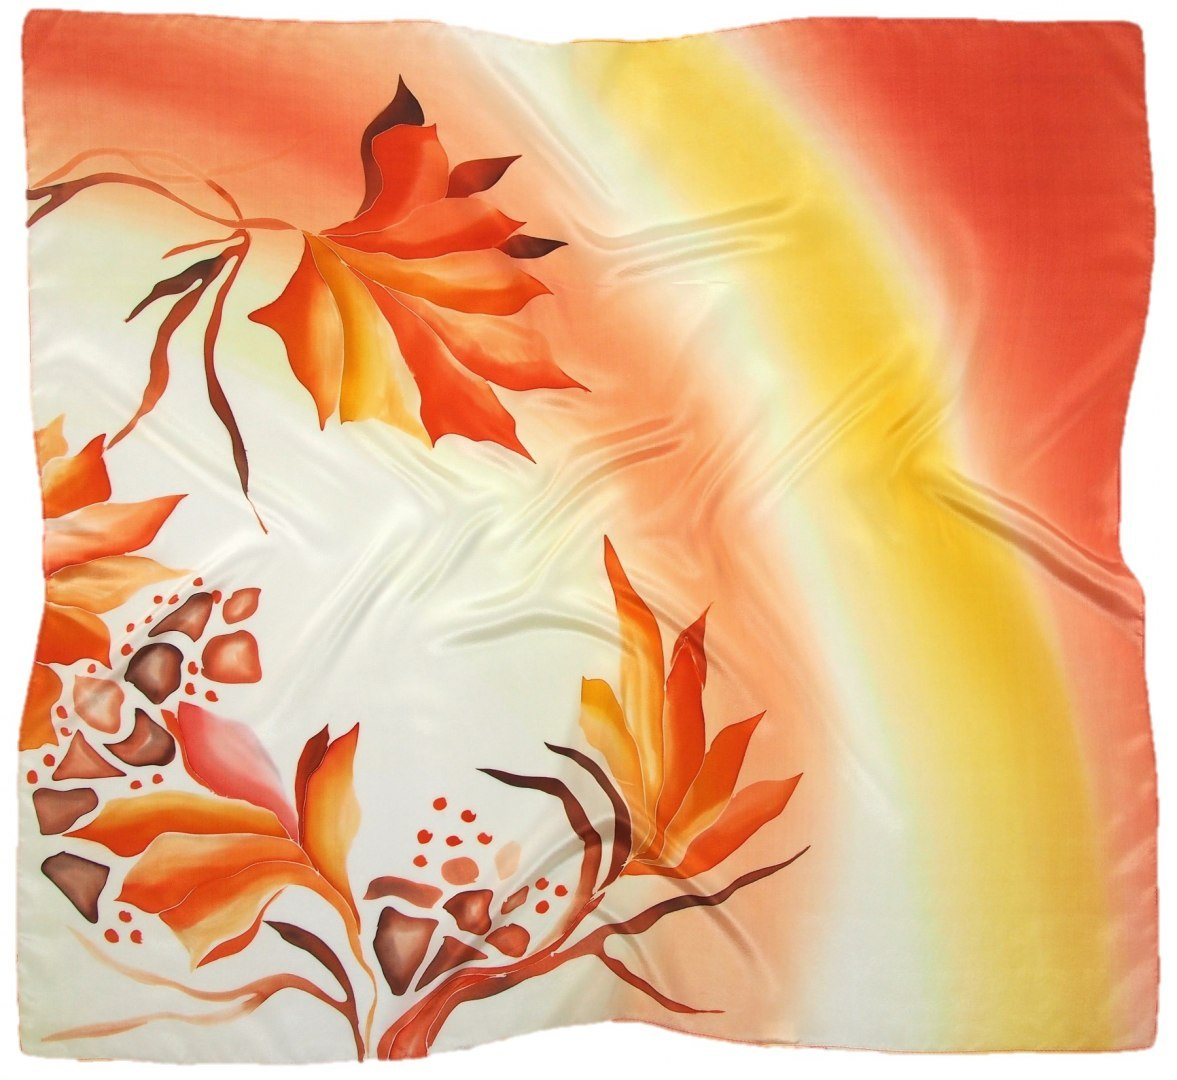 AM-675 Hand-painted silk scarf, 90x90cm